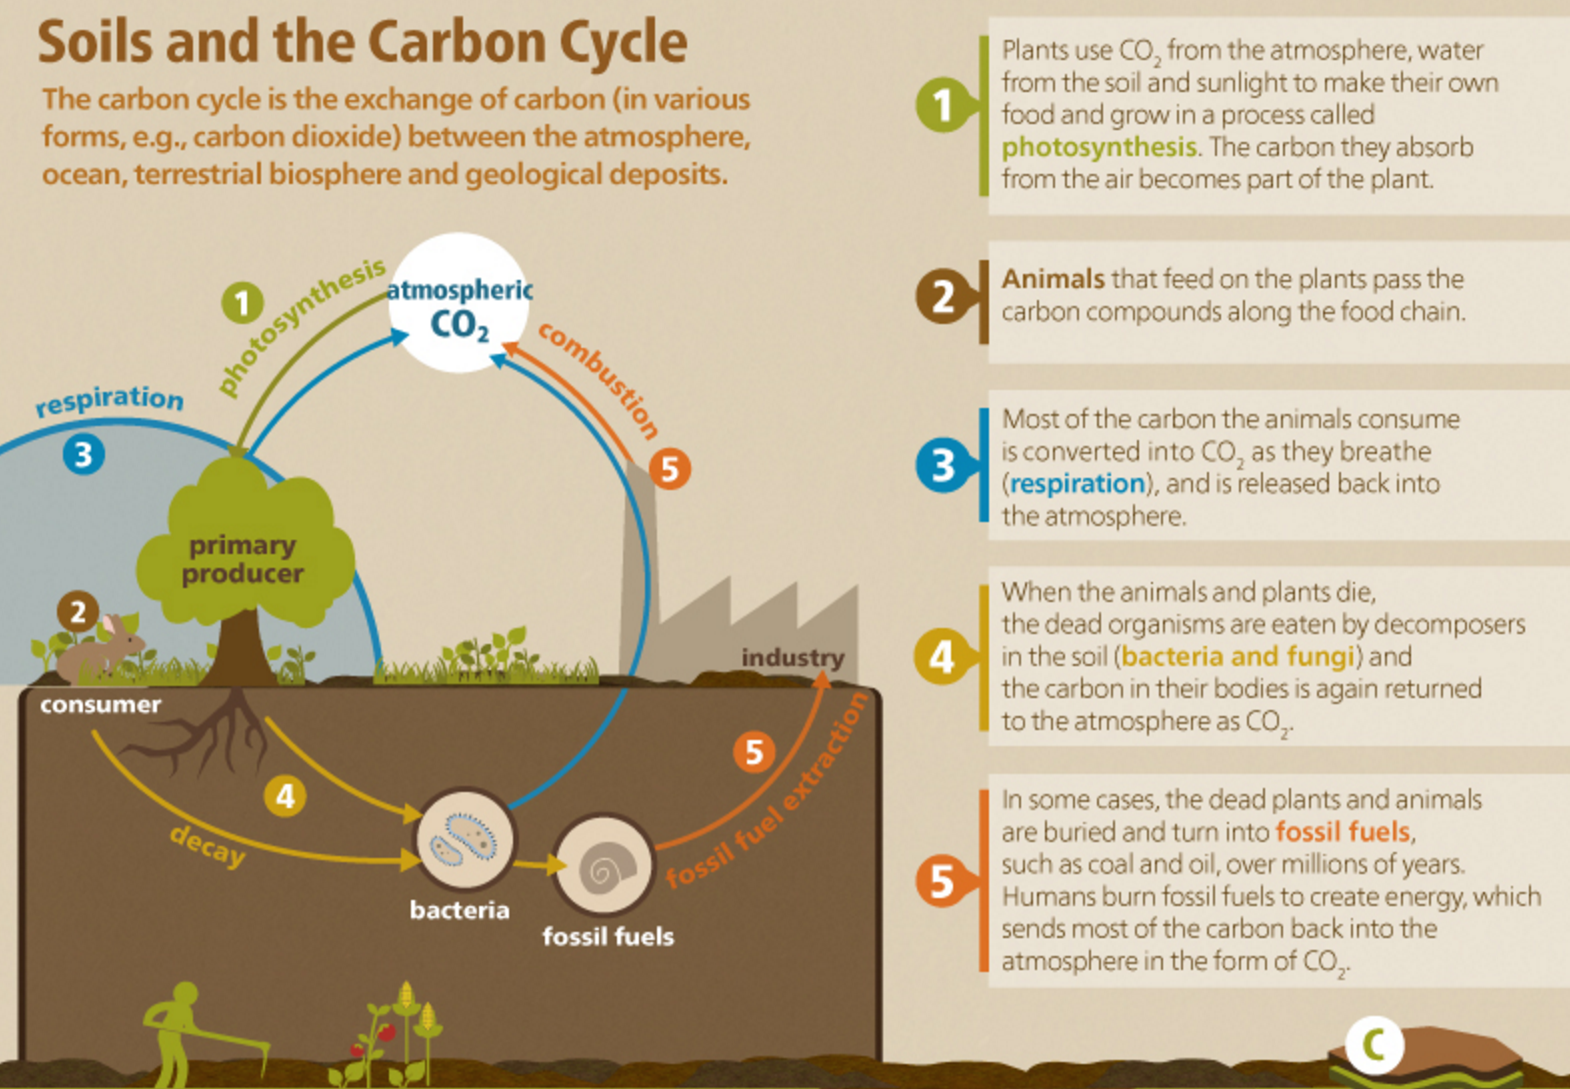 Soils, carbon cycle, and climate change